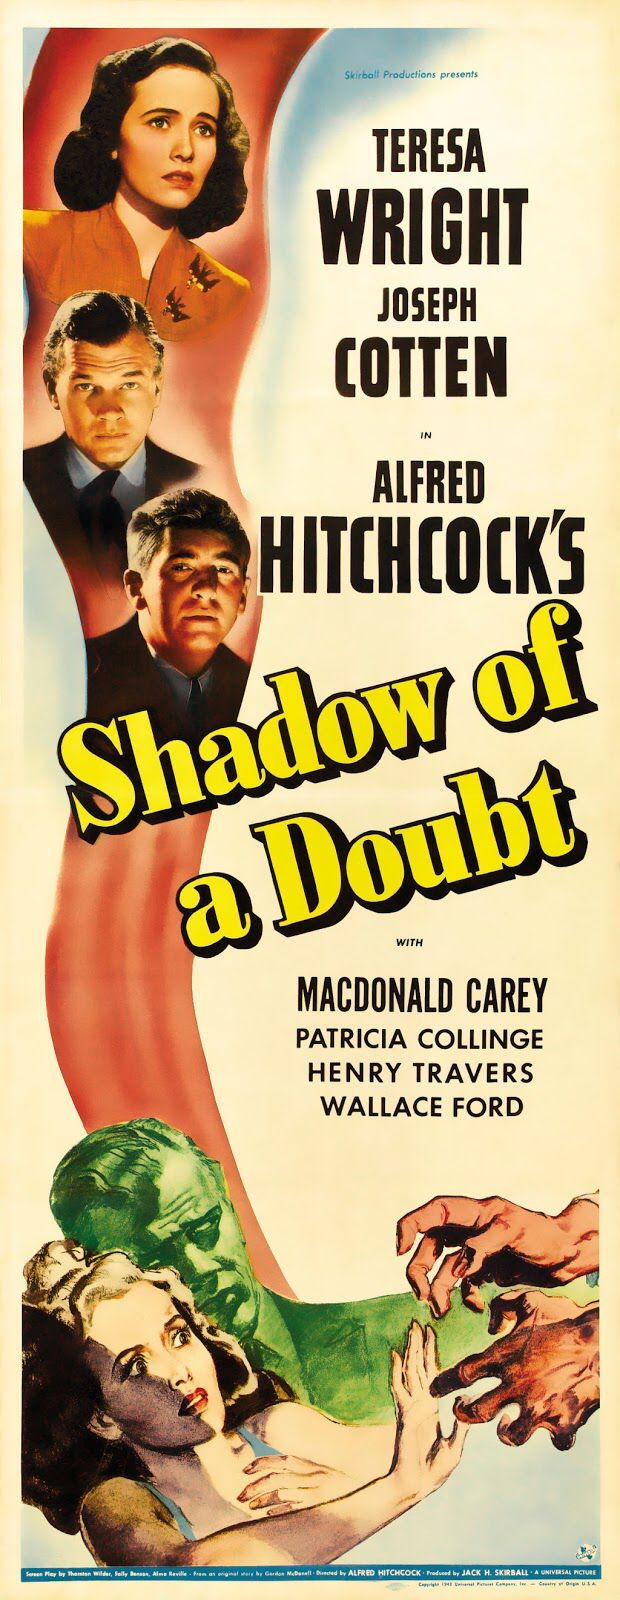 Shadow of a Doubt (1943) Teresa Wright, Joseph Cotten, Macdonald Carey, Patricia Collinge, Henry Travers